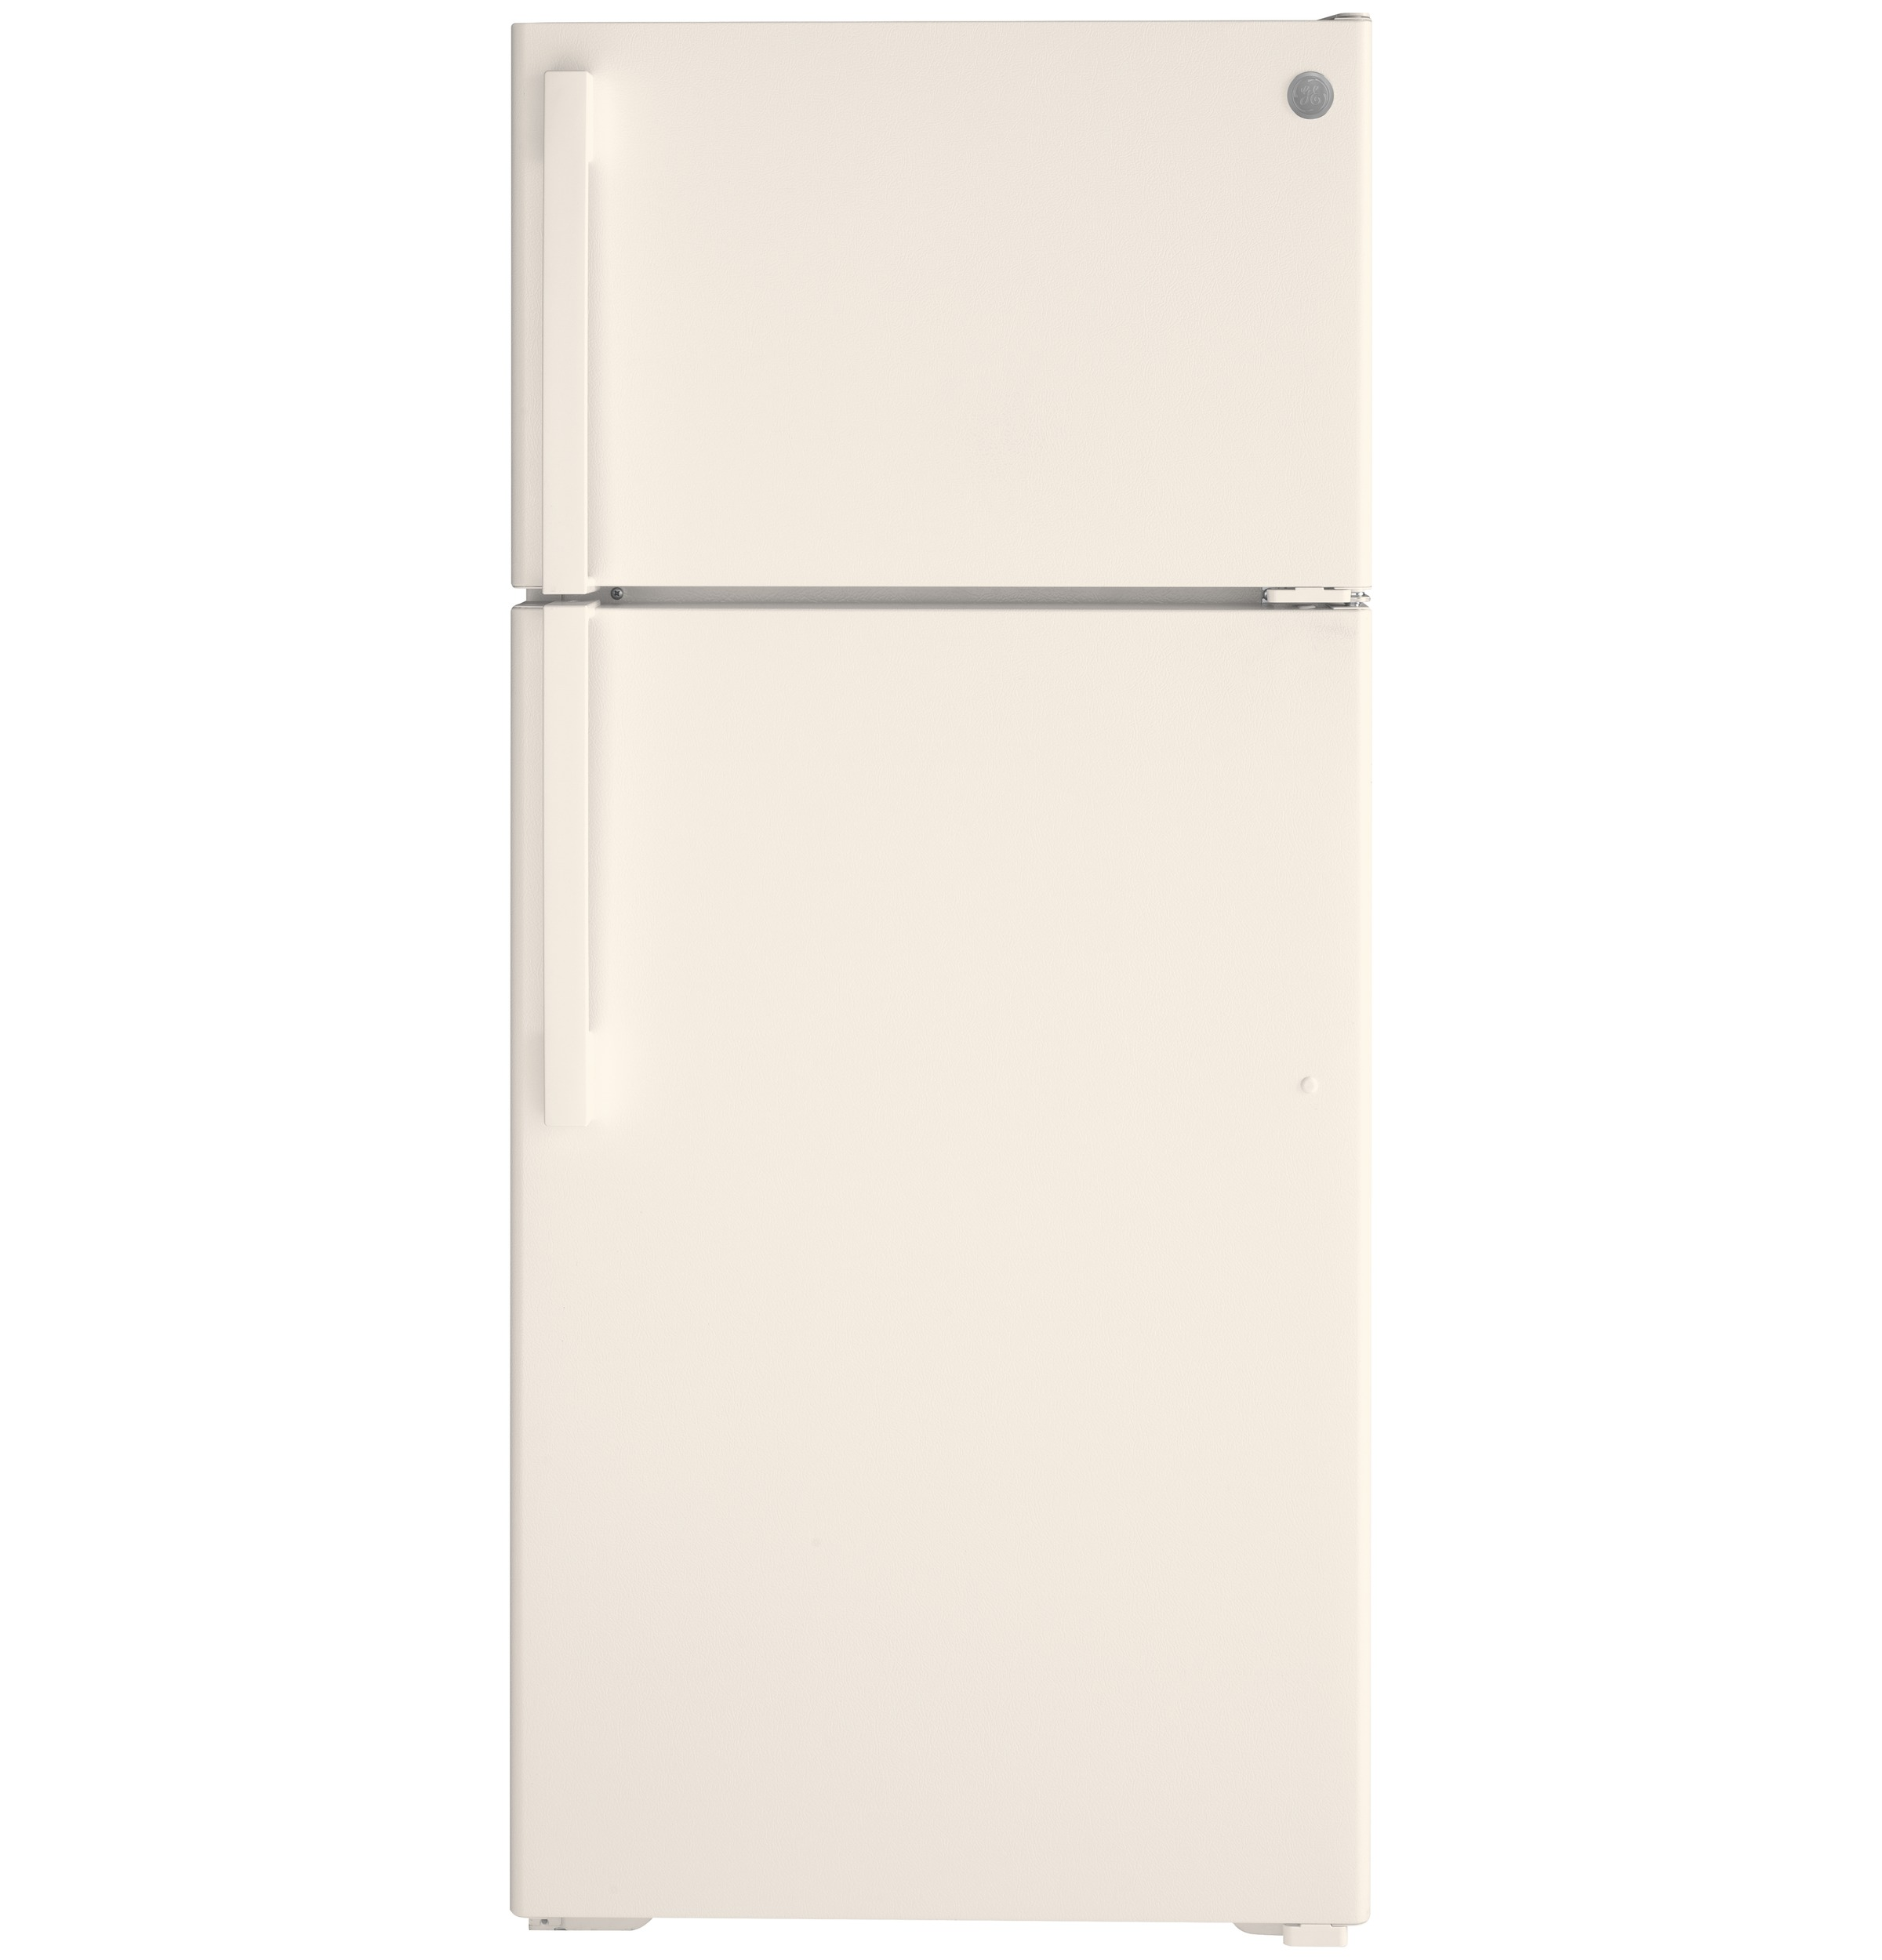 GE GE® ENERGY STAR® 16.6 Cu. Ft. Top-Freezer Refrigerator